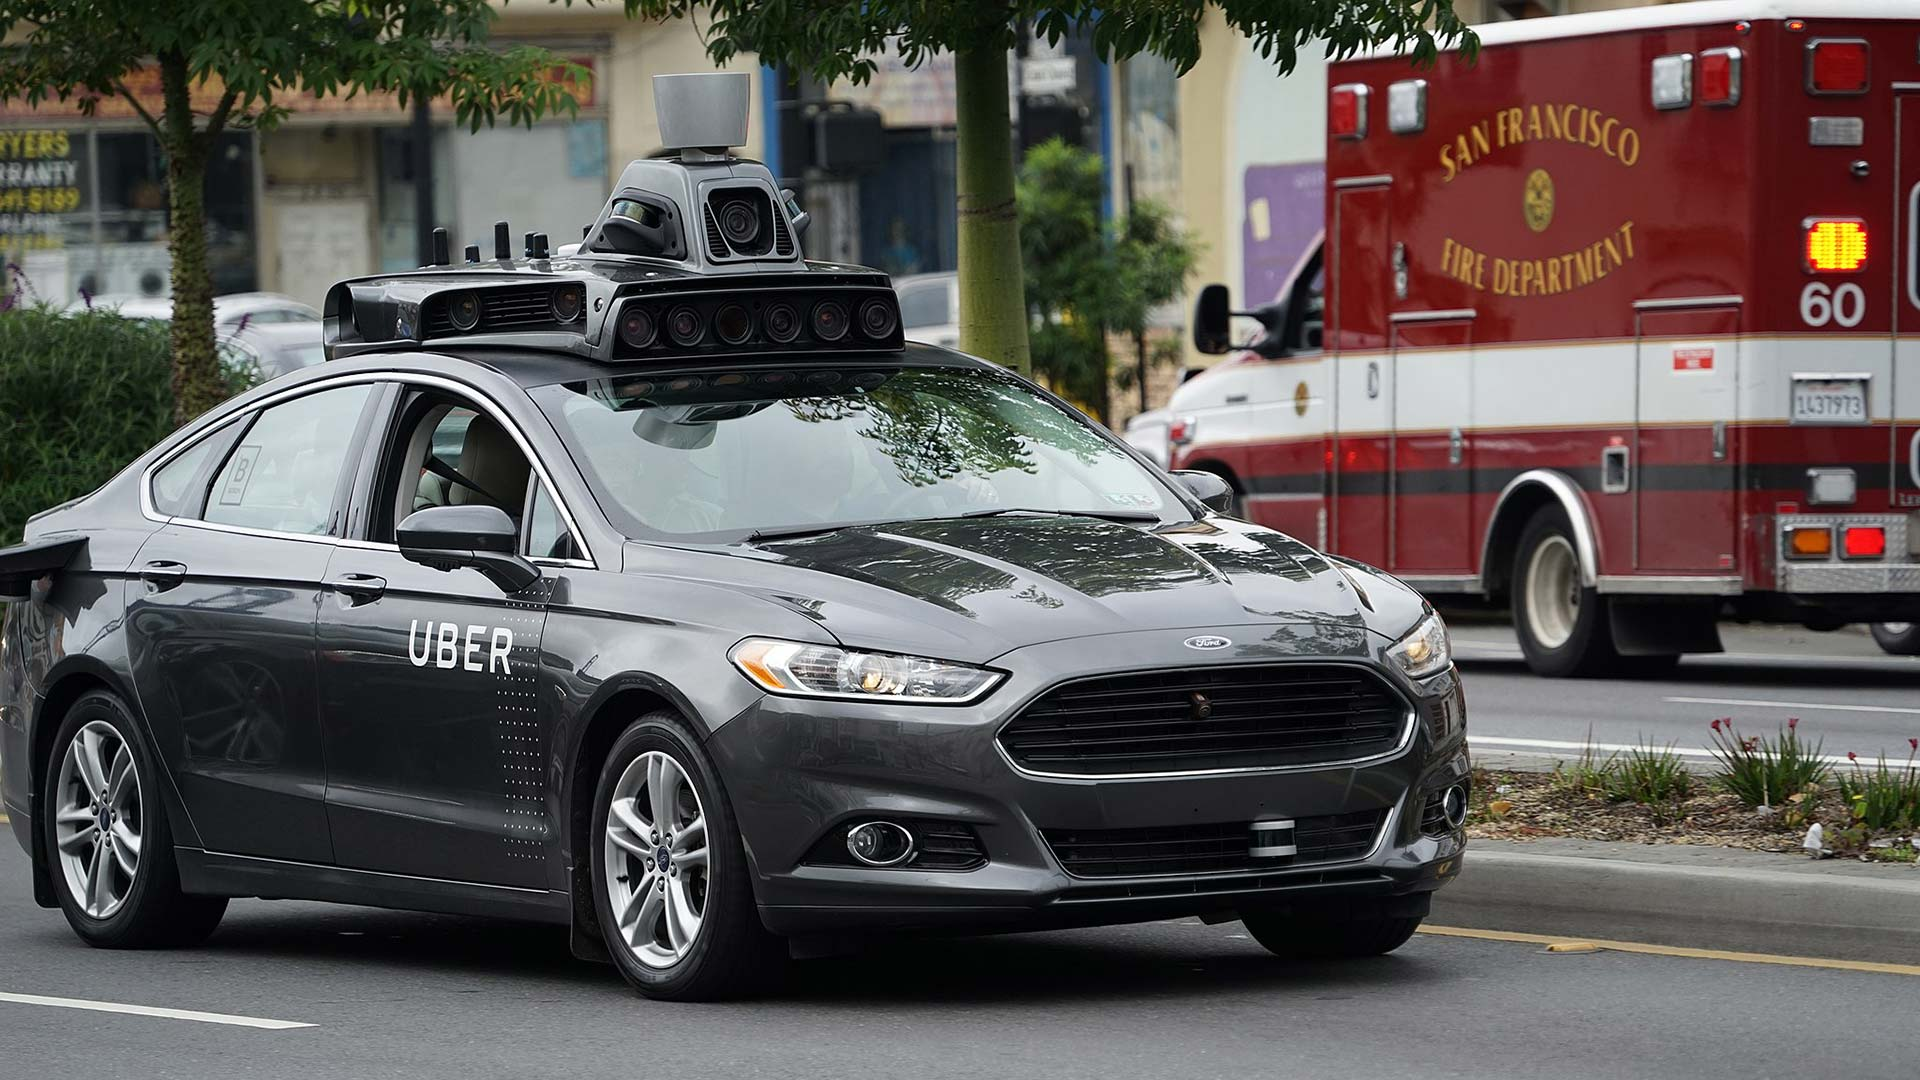 An Uber self-driving vehicle in San Francisco